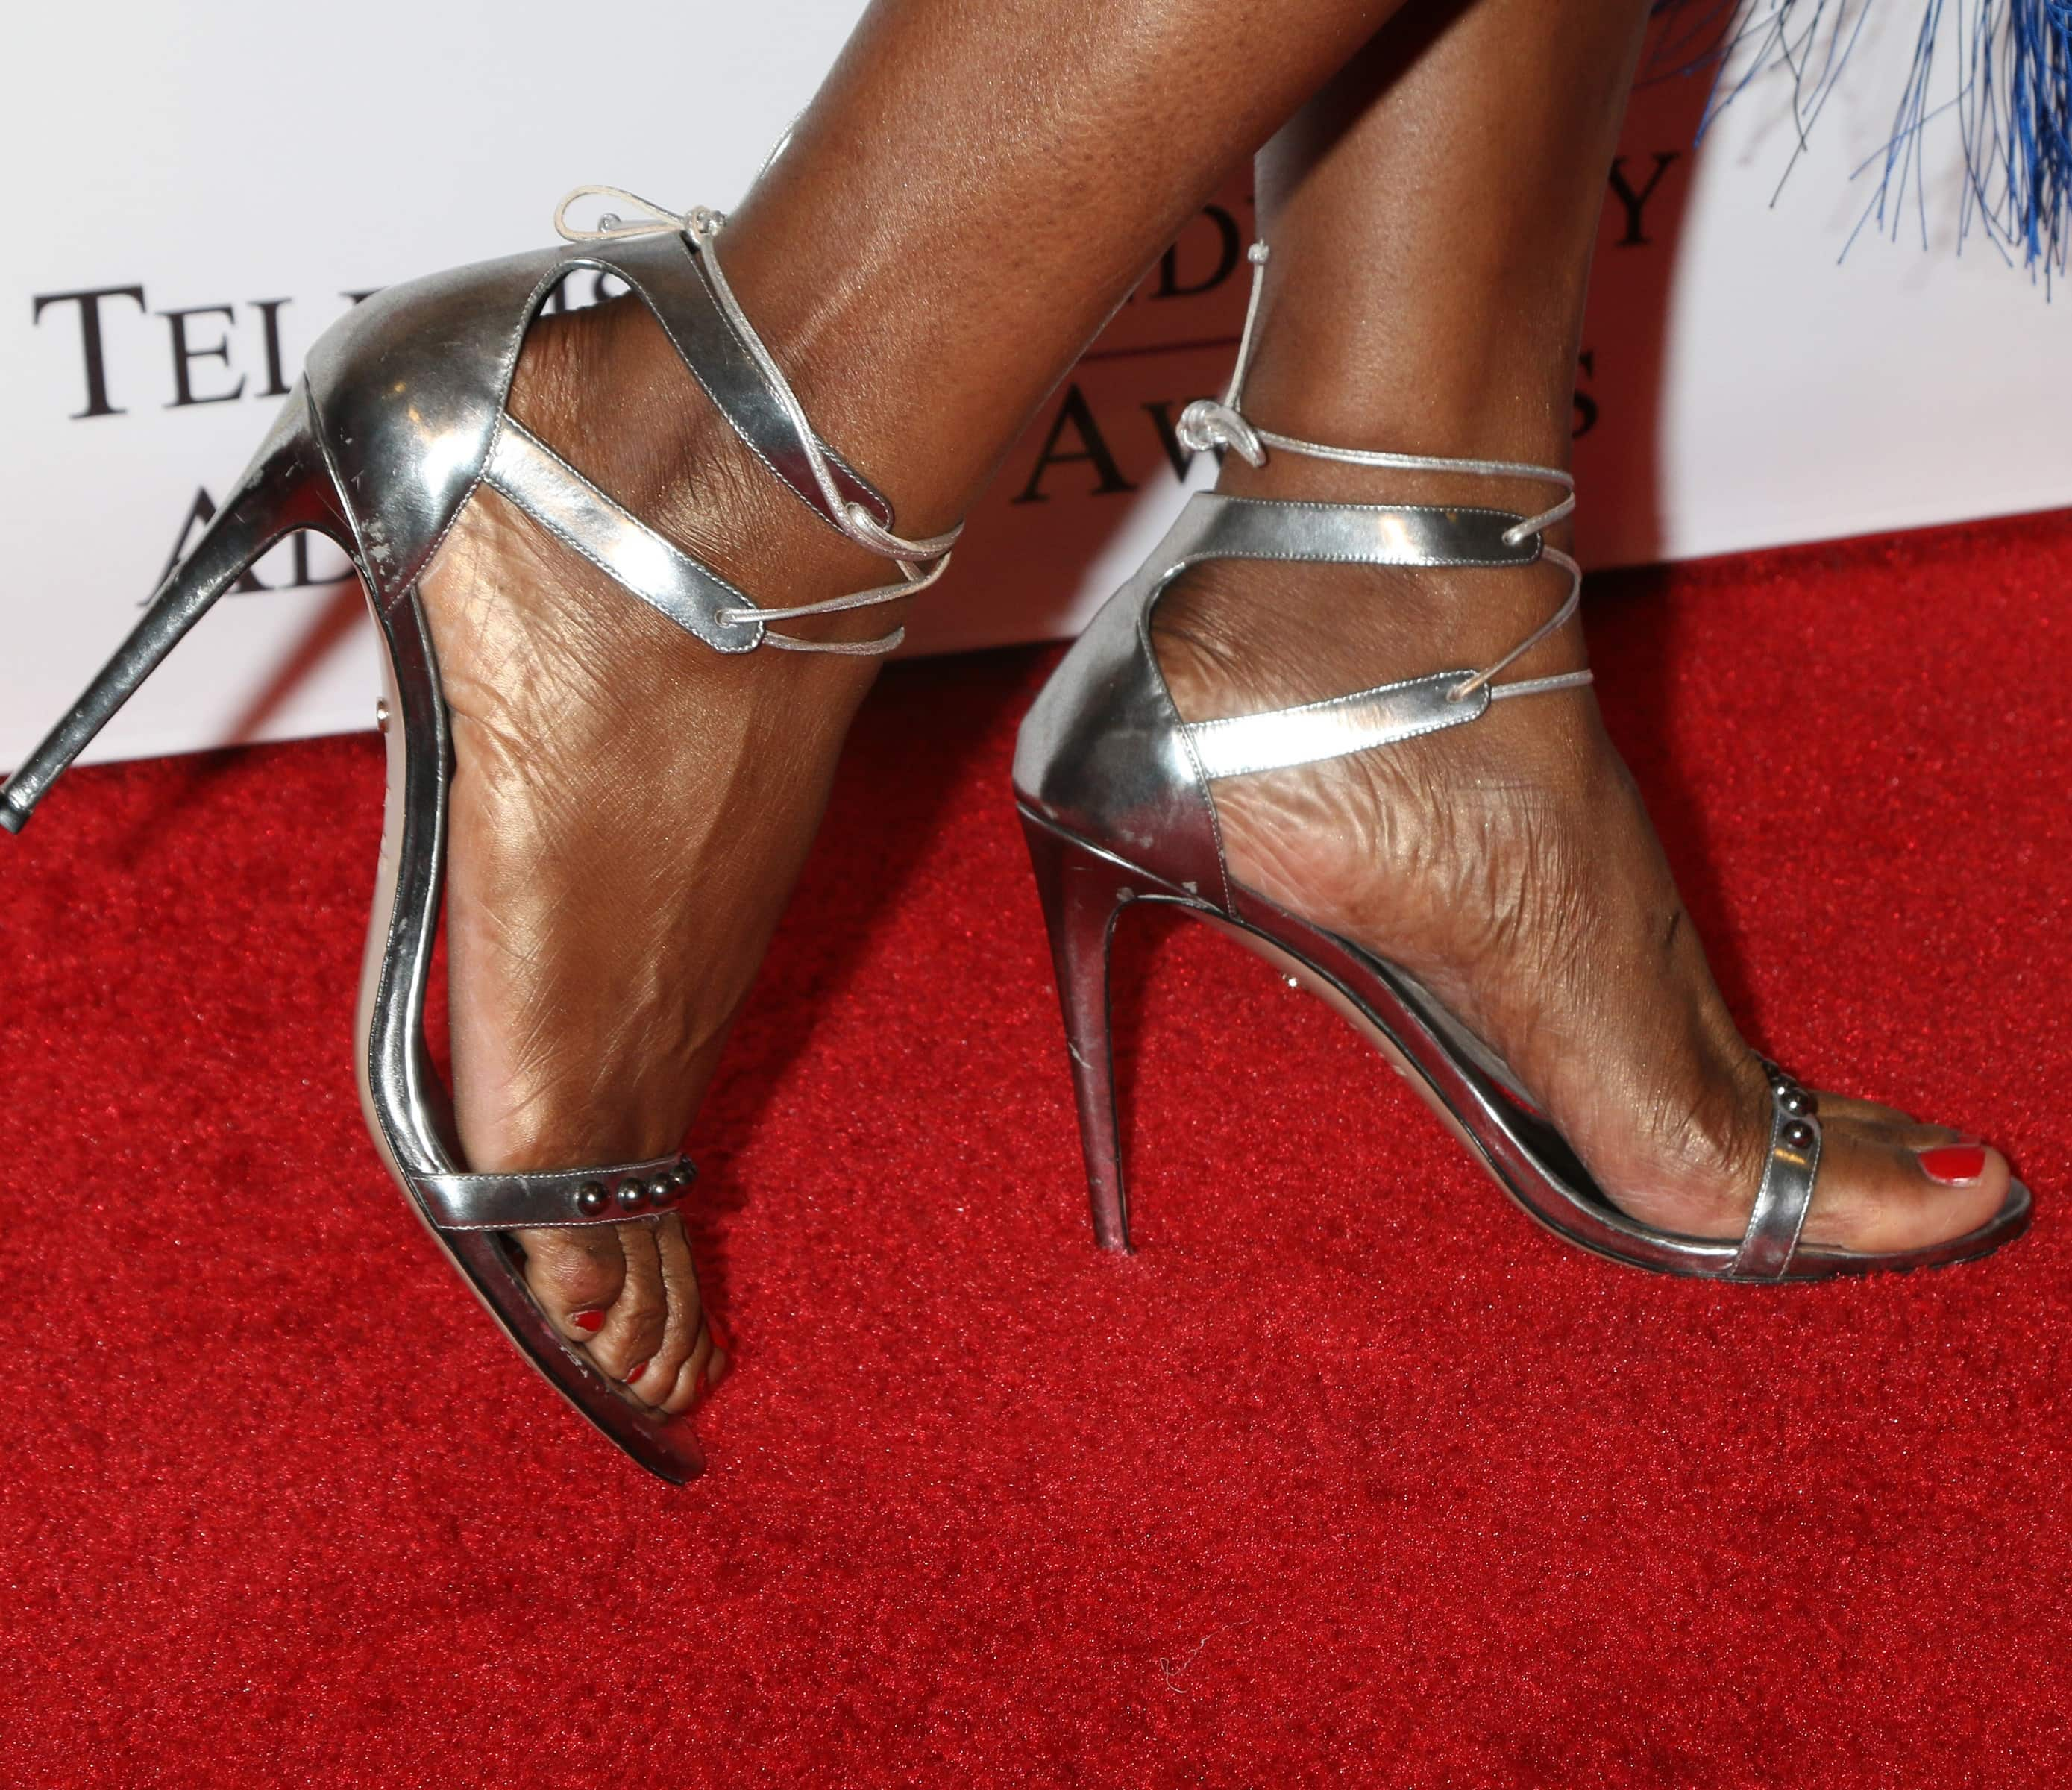 Laverne Cox's enormous feet in metallic ankle-strap sandals